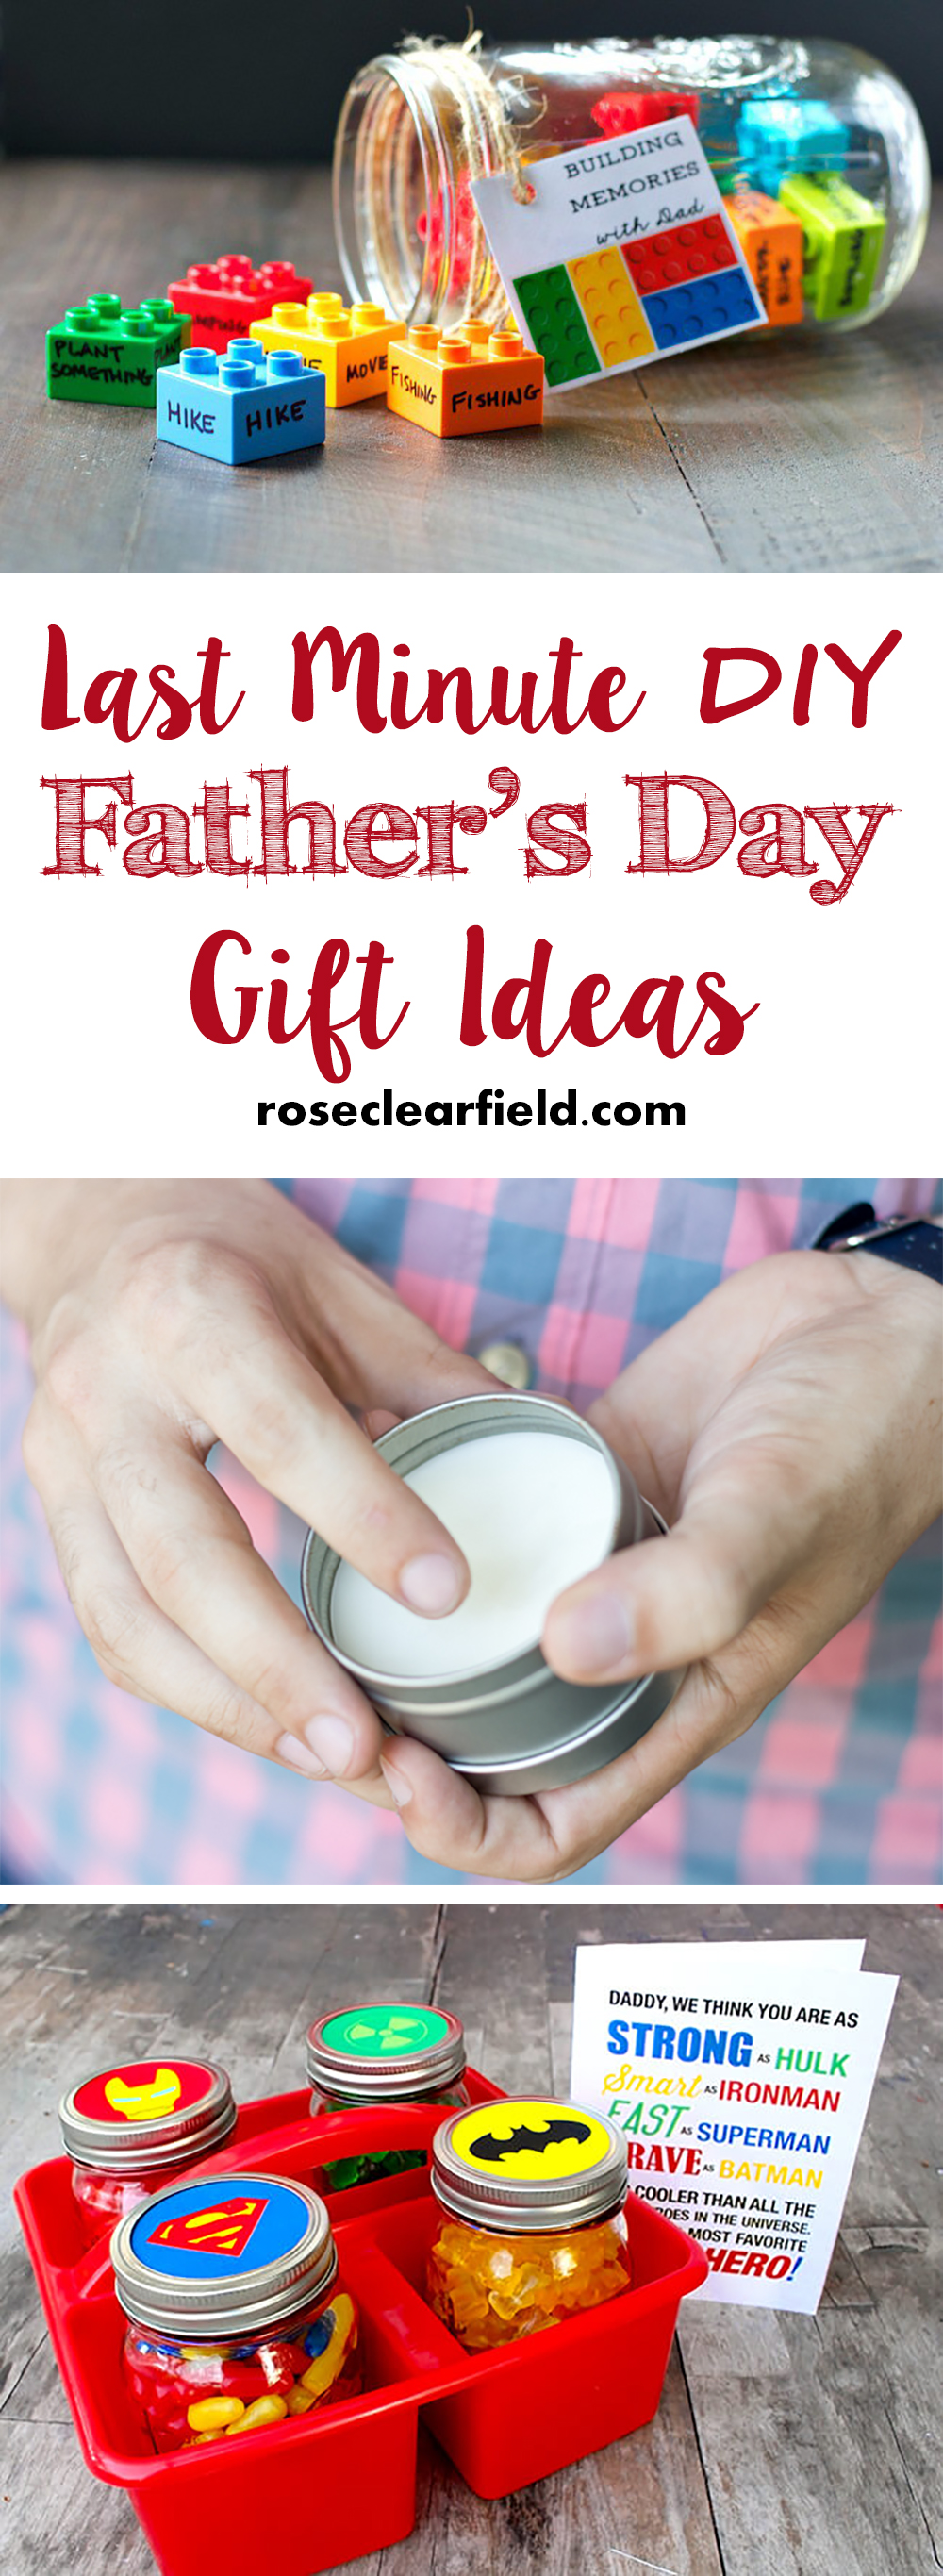 Last-Minute DIY Father's Day Gift Ideas • Rose Clearfield